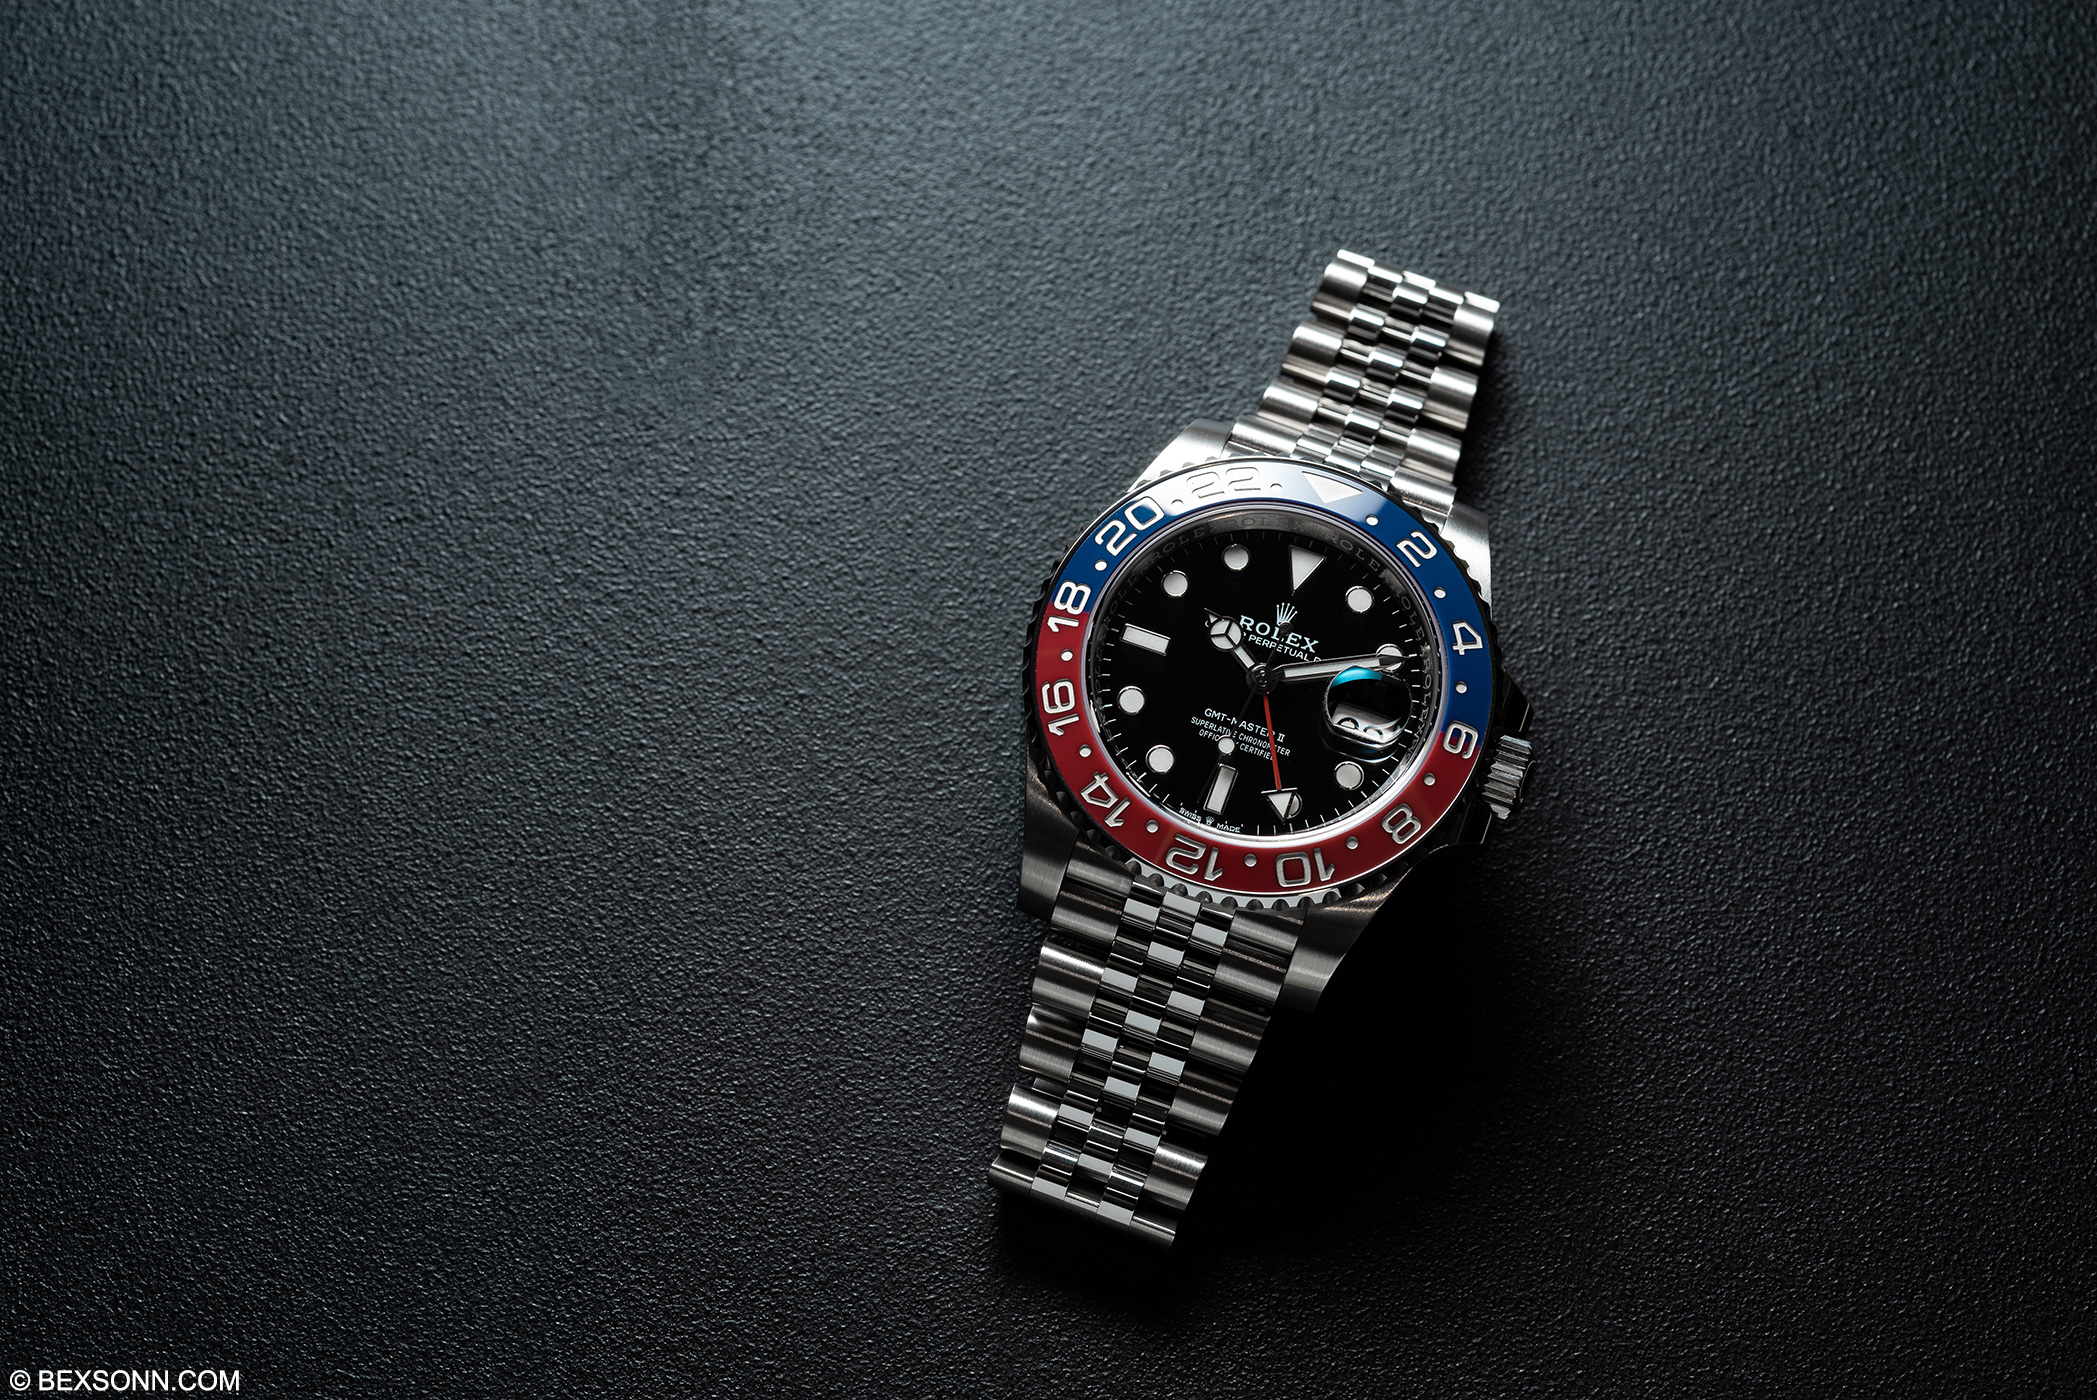 7001b88a6a5 What Rolex had to do is to come up with a way of making the Cerachrom bezel  out of one solid piece. Rolex does this by creating a red ceramic bezel  inlay, ...